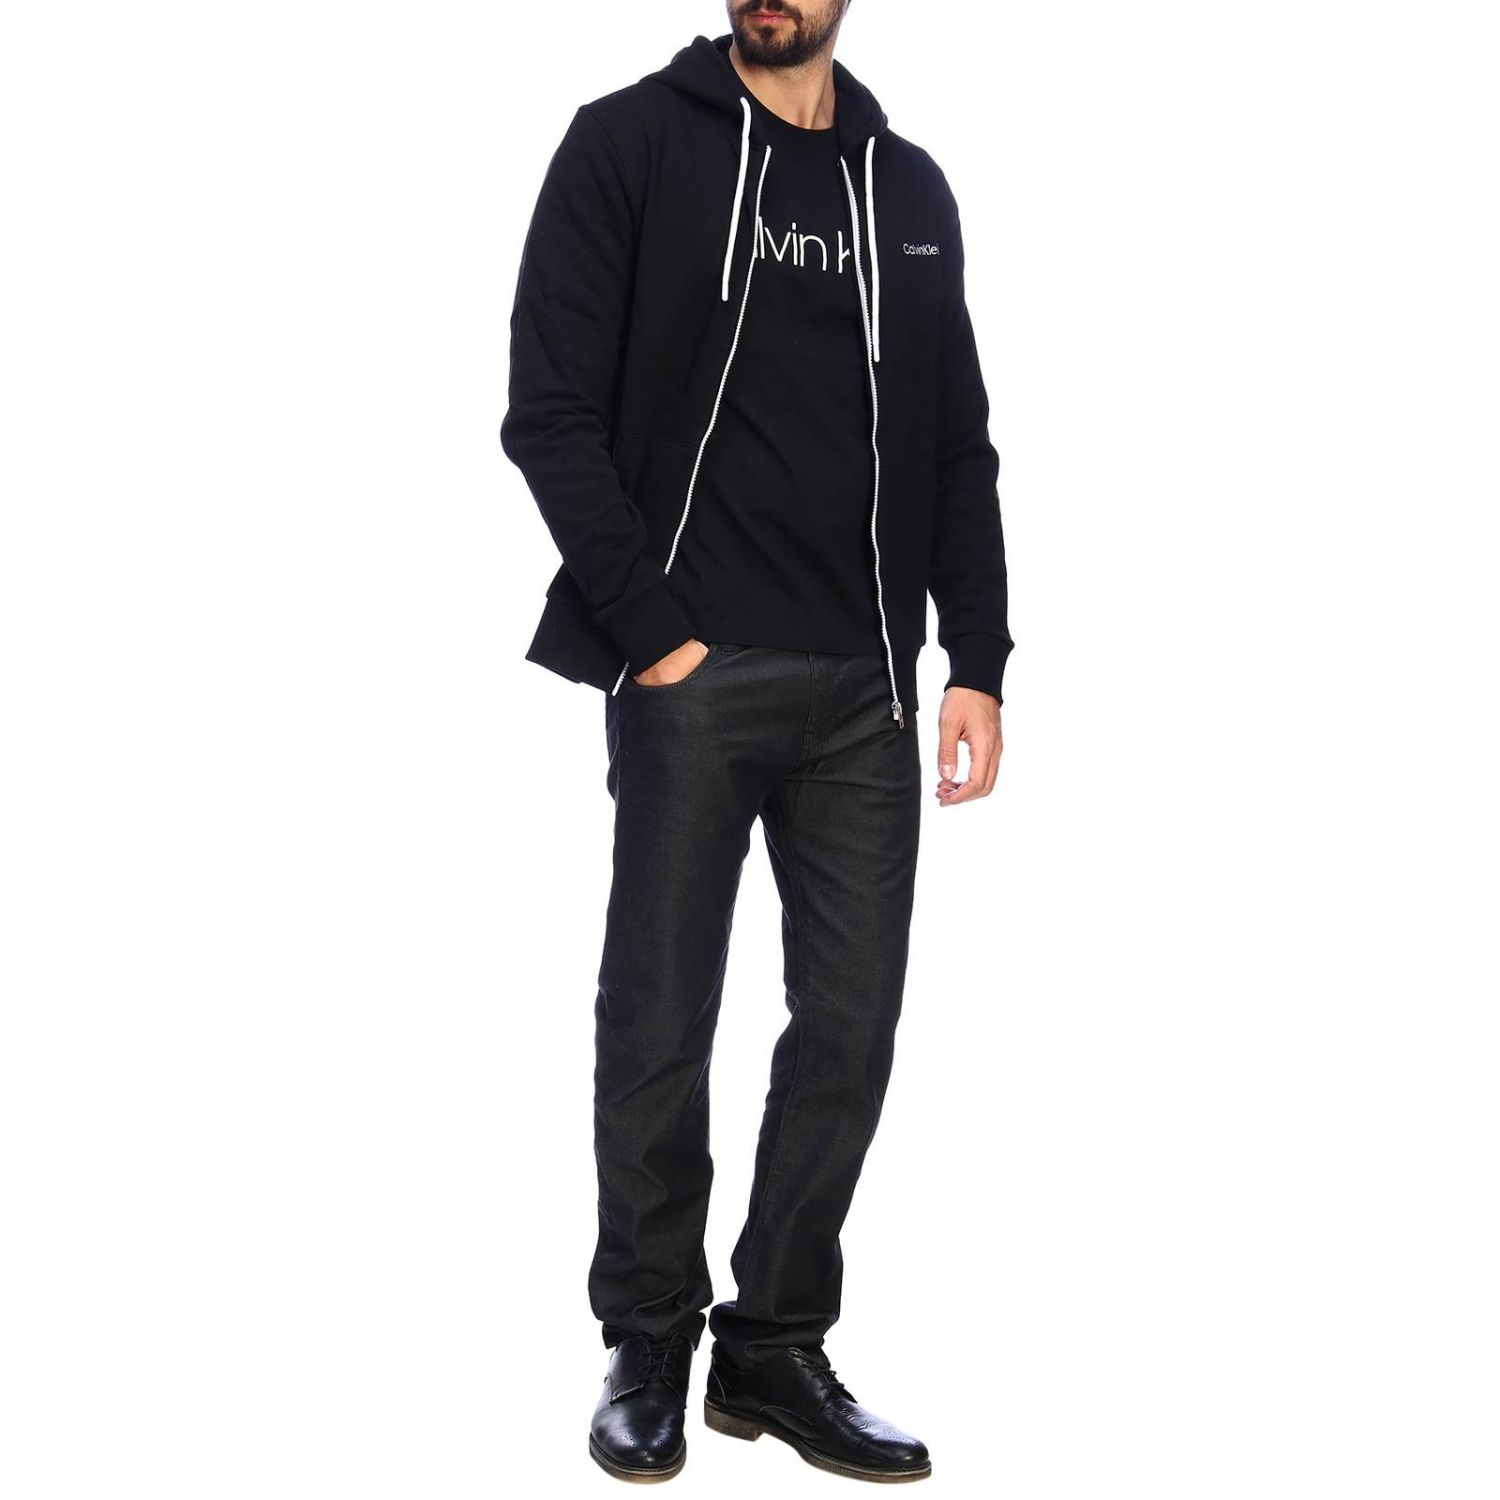 Sweater men Calvin Klein black 5